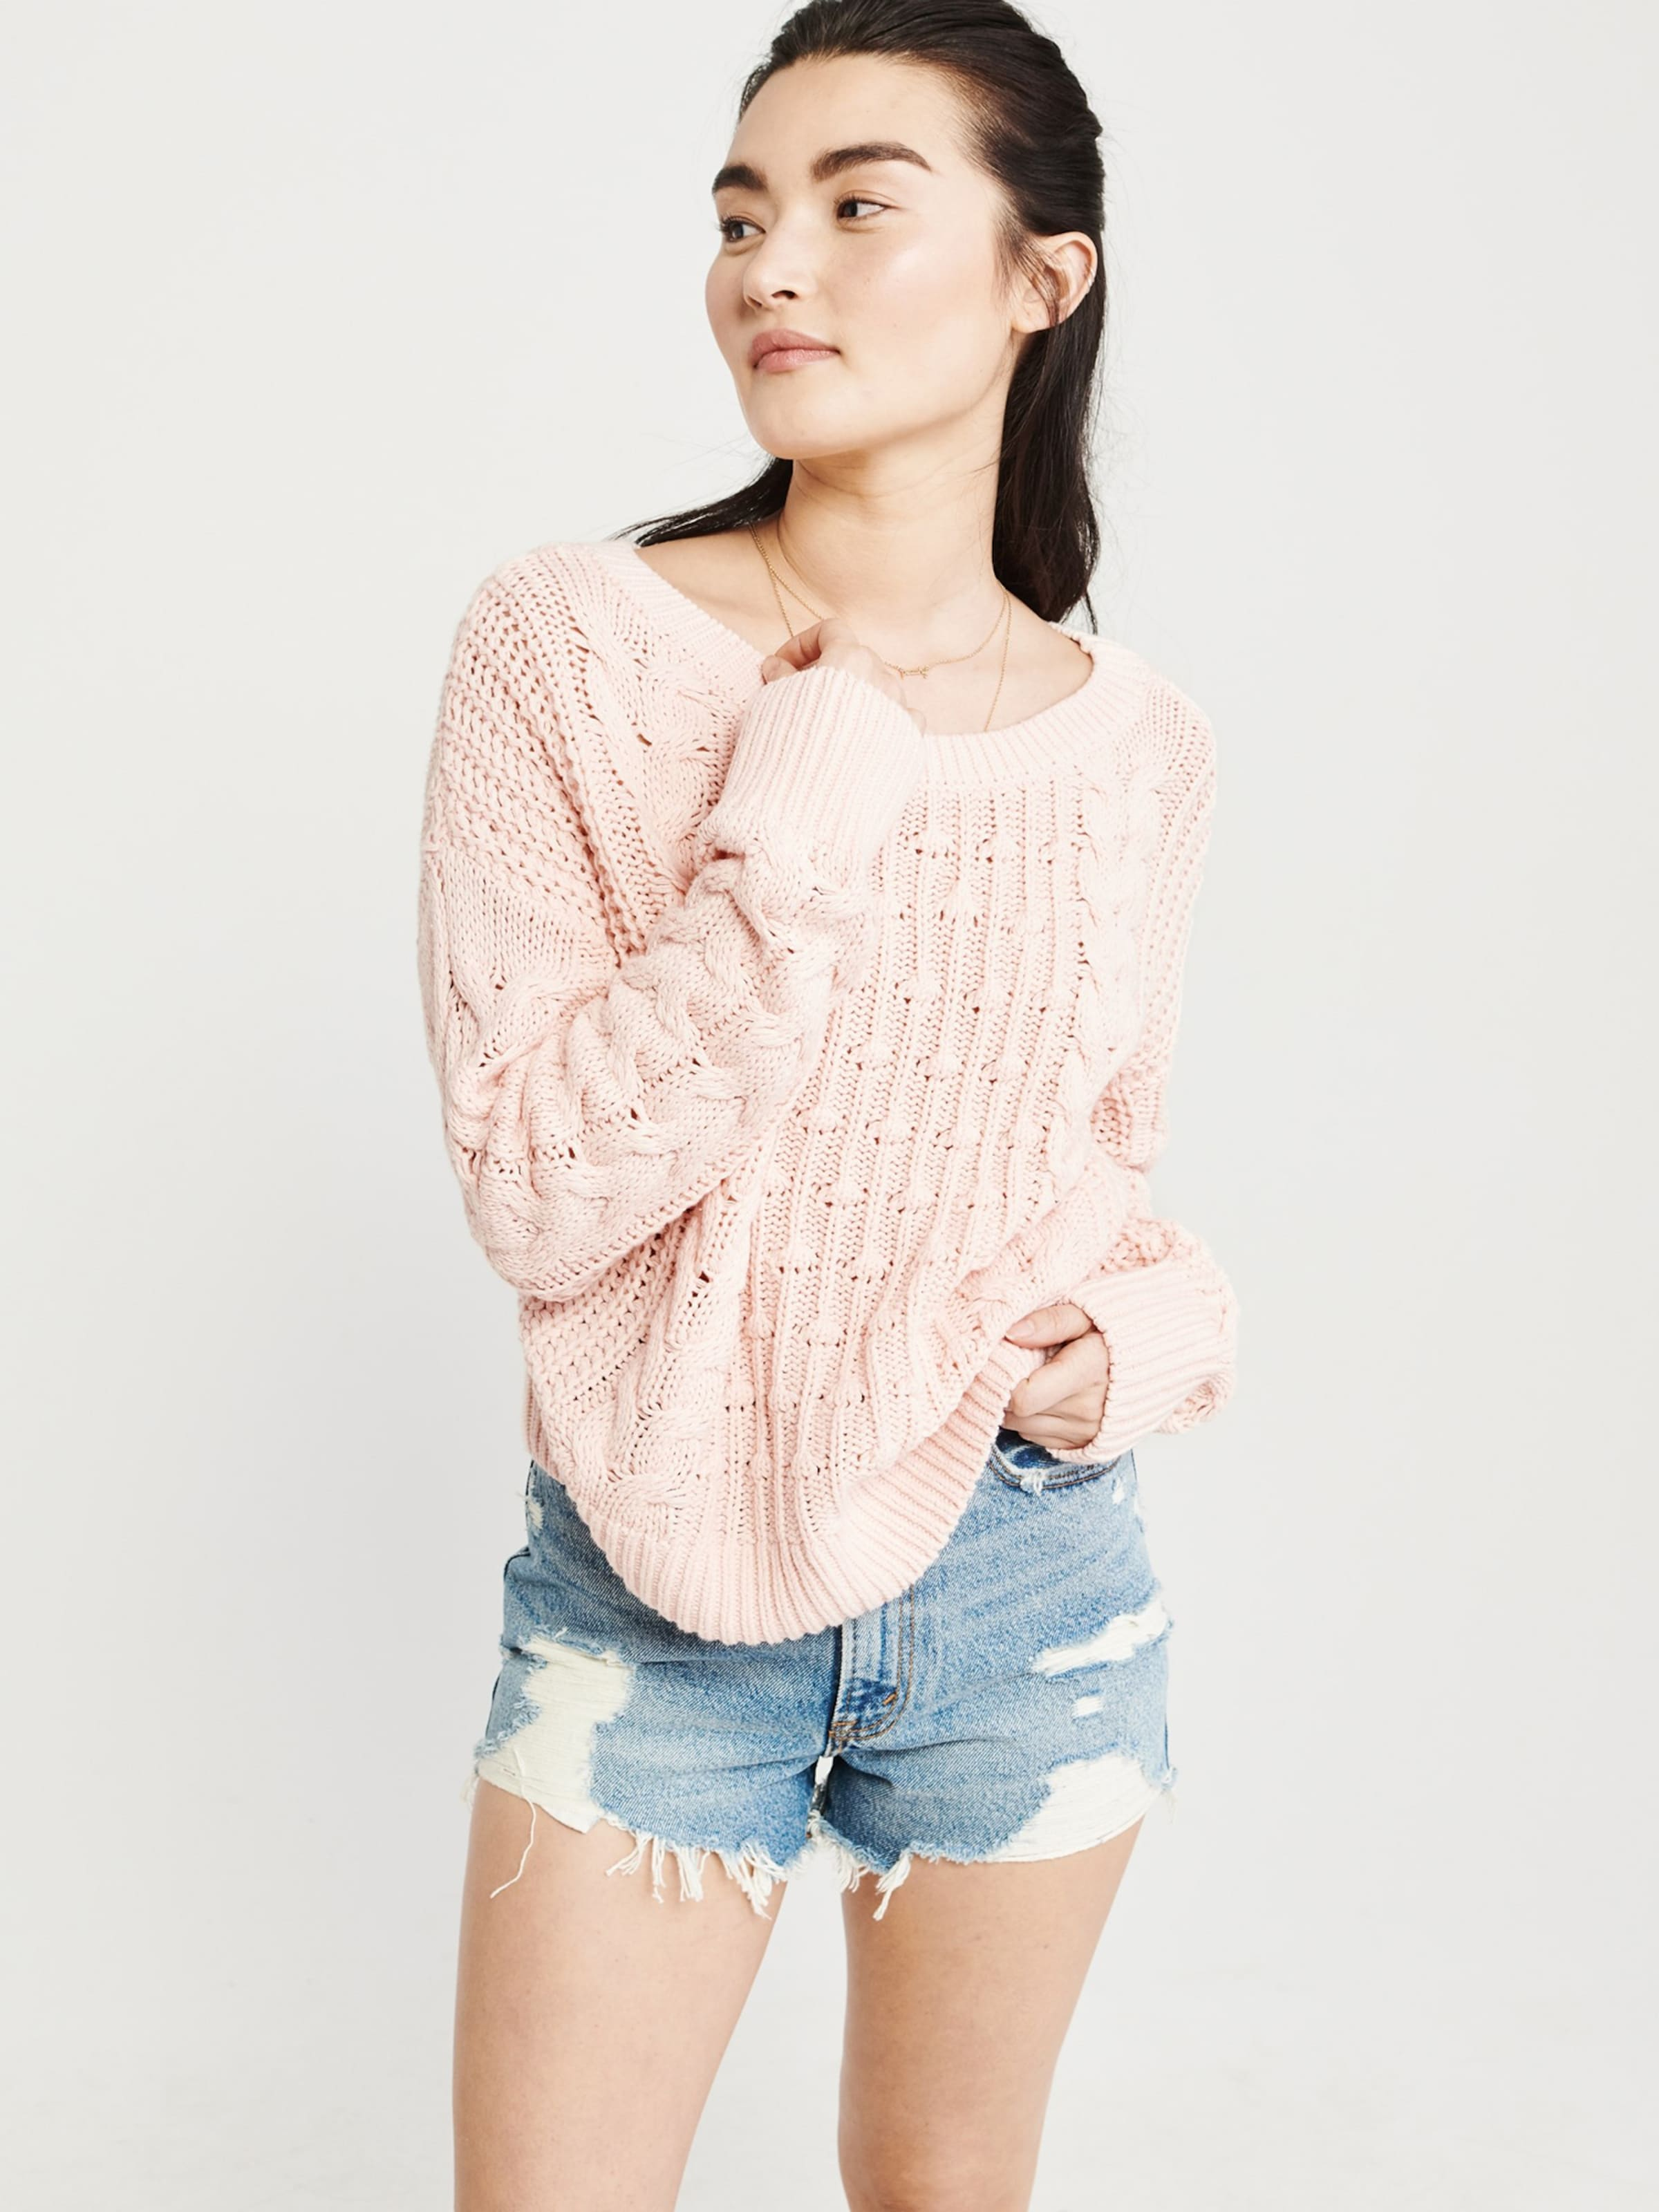 bobble Pullover Cable 'sb19 In Pink Abercrombieamp; Fitch Crew' qpSUzMV